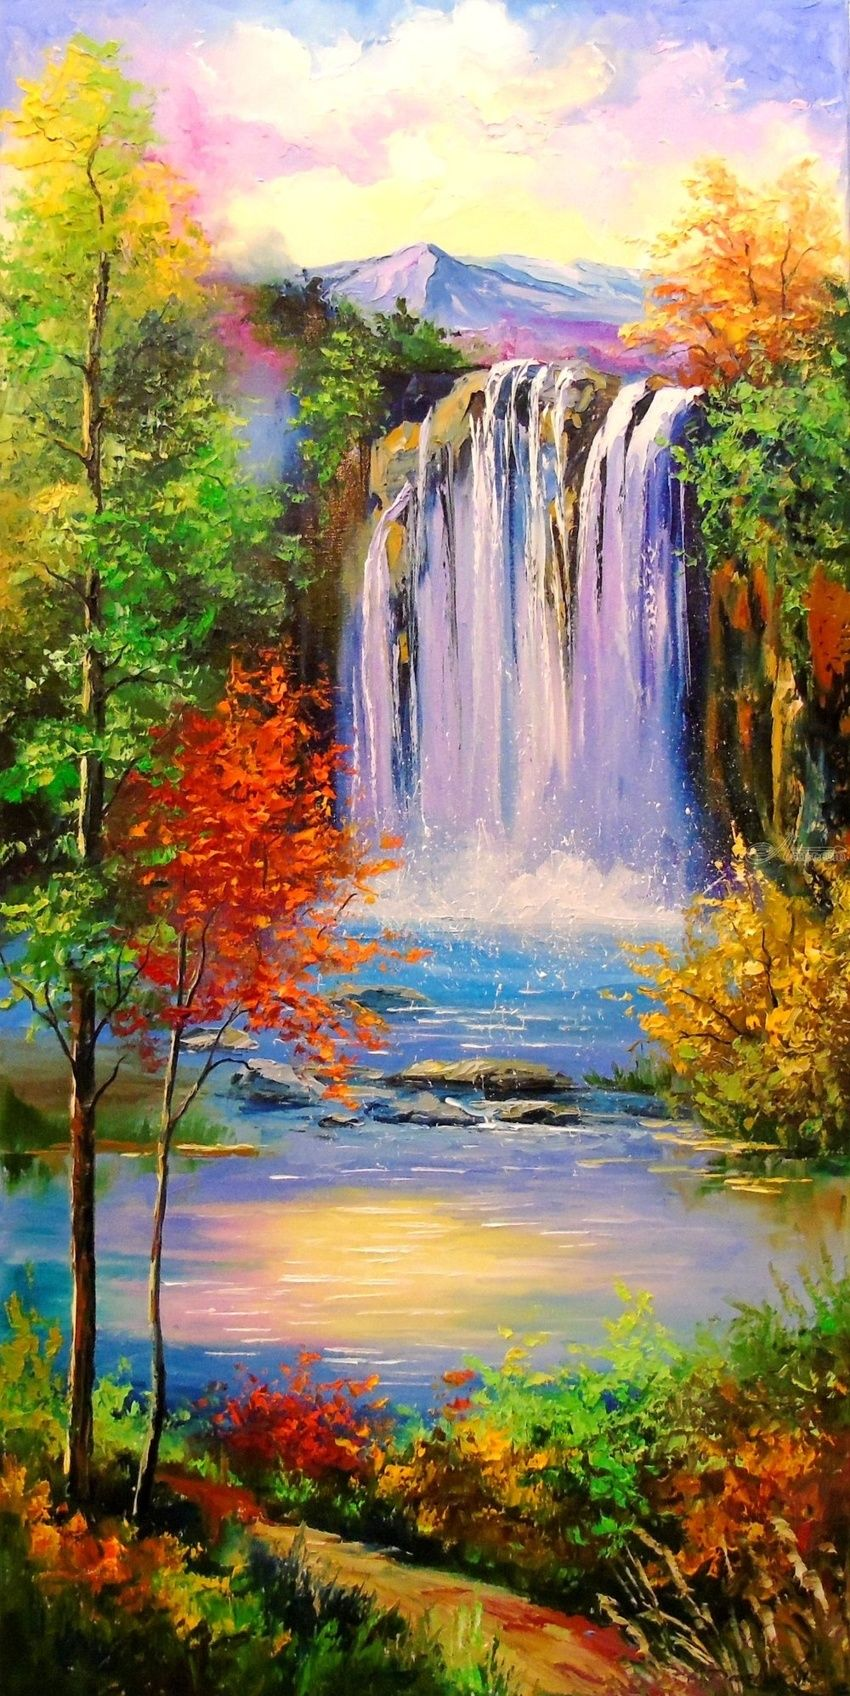 Mountain Waterfal Paintings Impressionism Botanical Floral Land Art Landscape Nature C With Images Nature Art Painting Waterfall Paintings Nature Paintings Acrylic